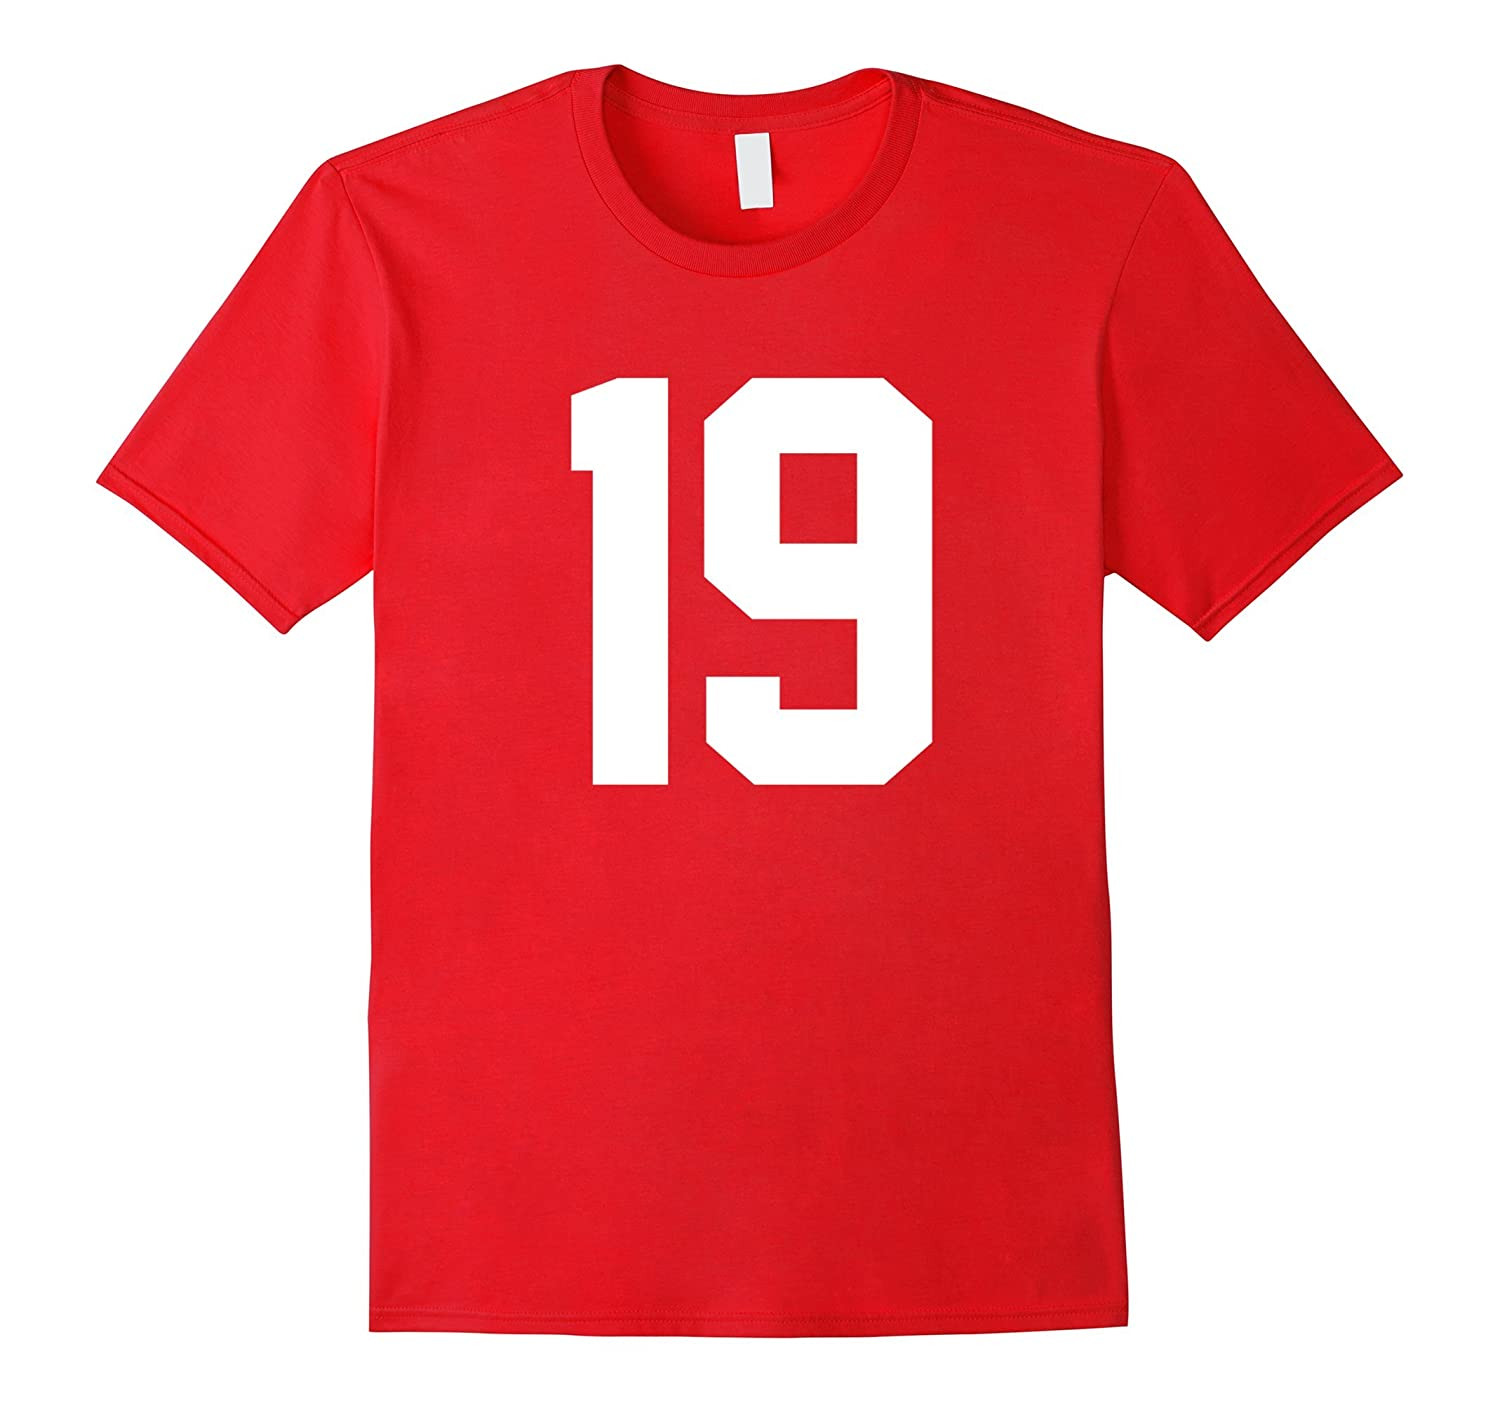 #19 Team Sports Jersey Number Front & Back Player / Fan Tee-TH